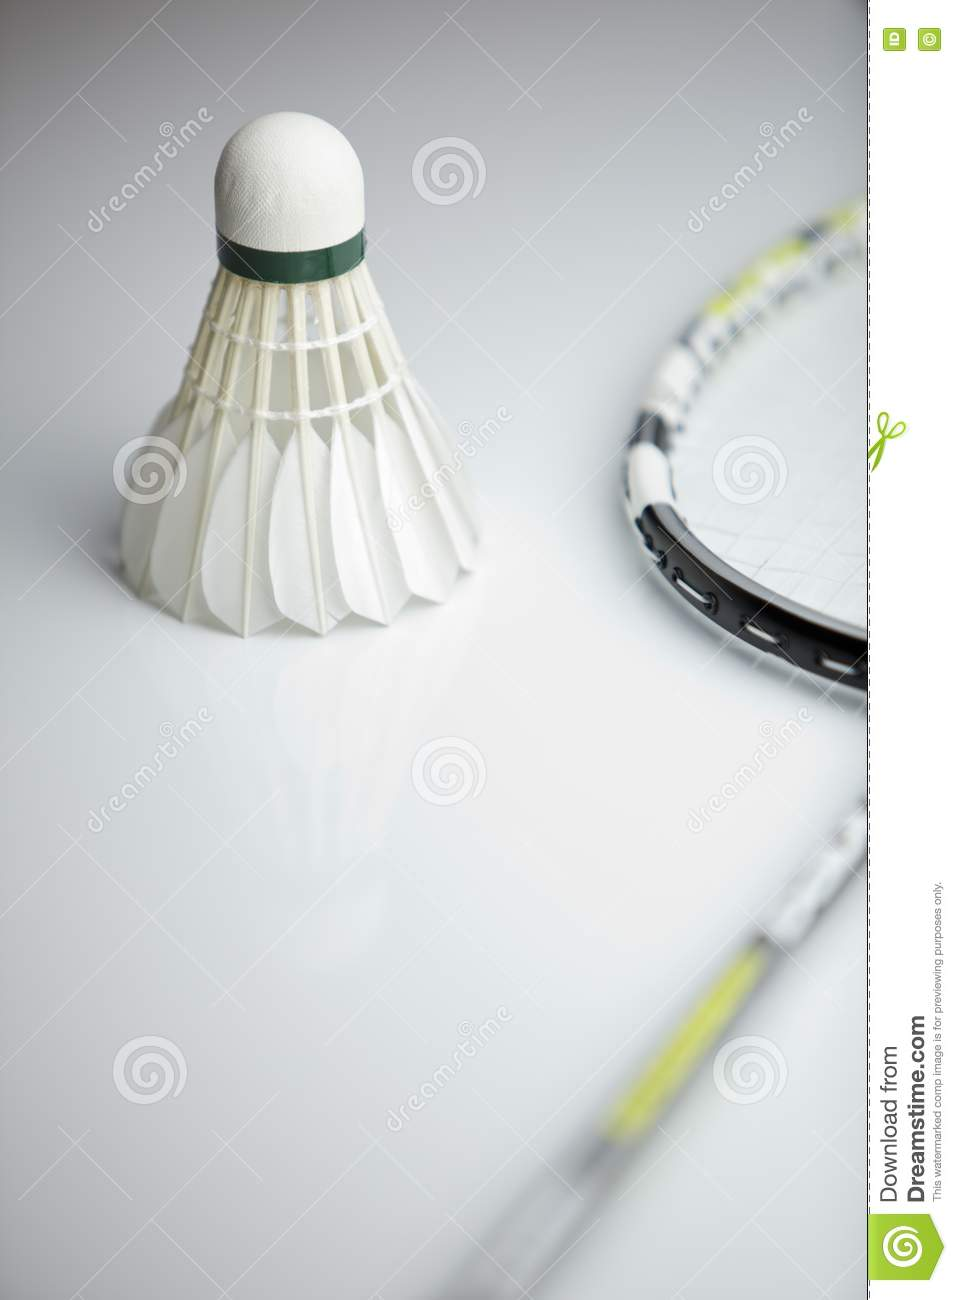 Badminton shuttlecock and racket on white background  shallow DOF    Badminton Racket And Shuttlecock